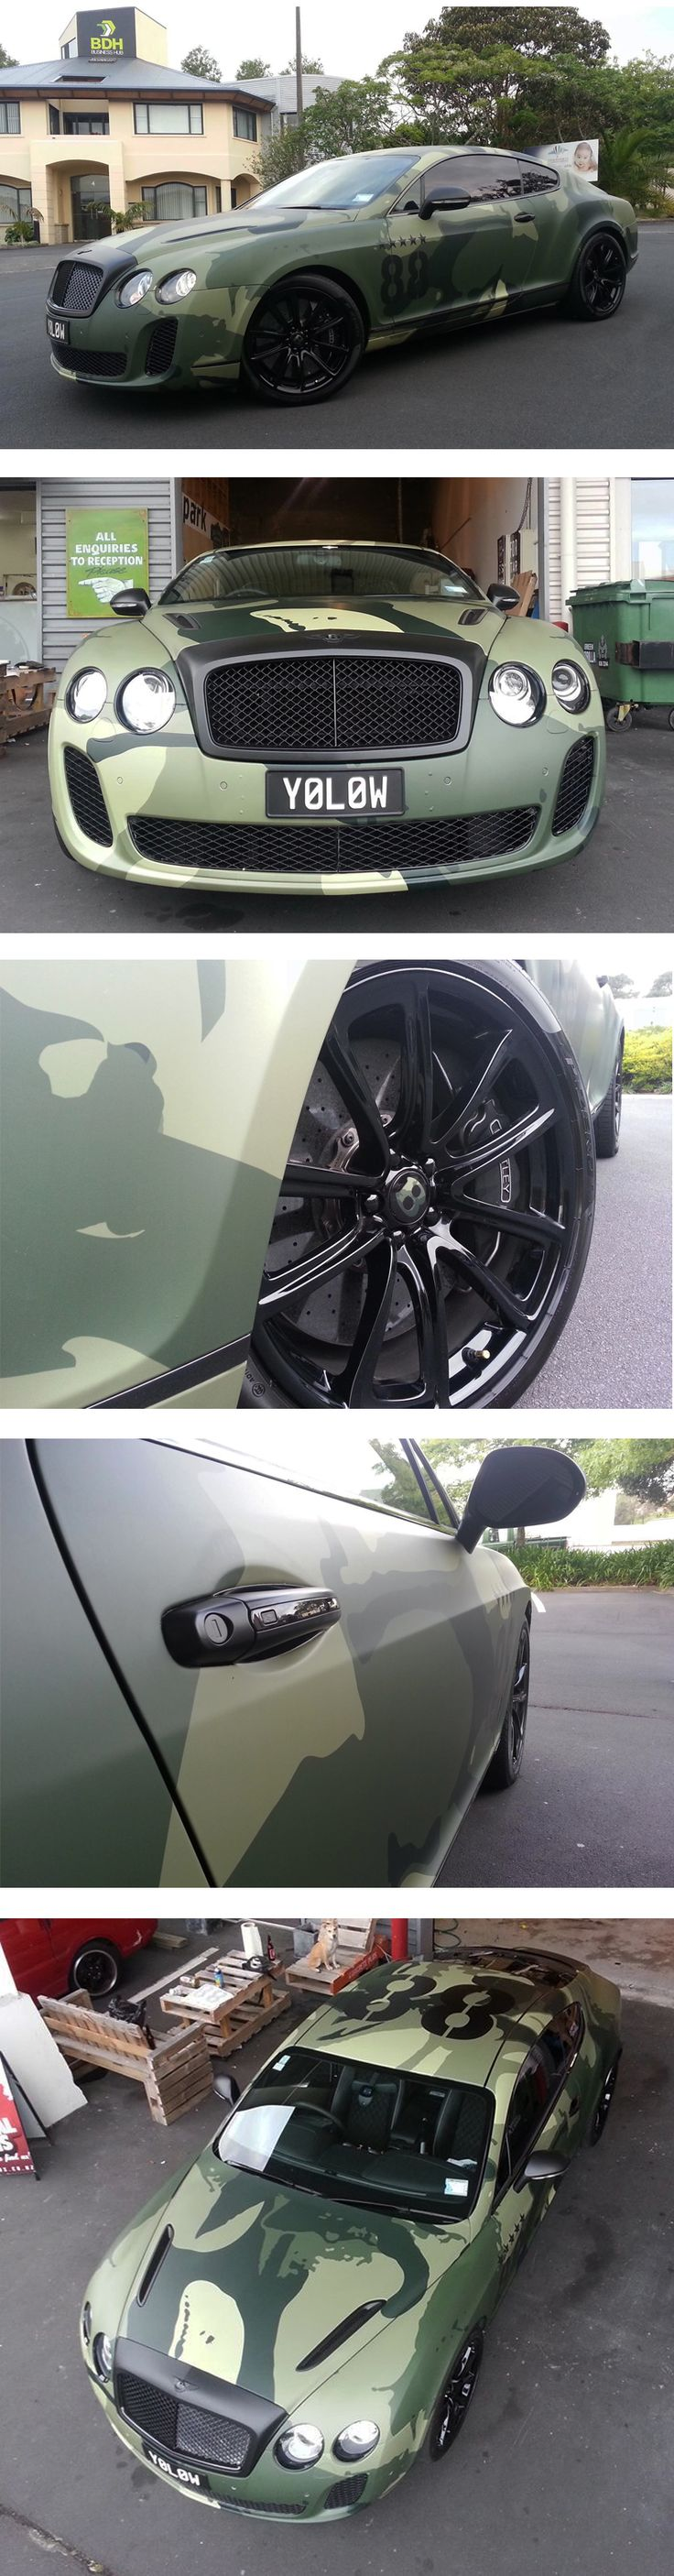 "2010 #Bentley Continental Supersport Full #Digital ""Camo"" Wrap + Matte Finish #Signage #Carwraps #Auckland"